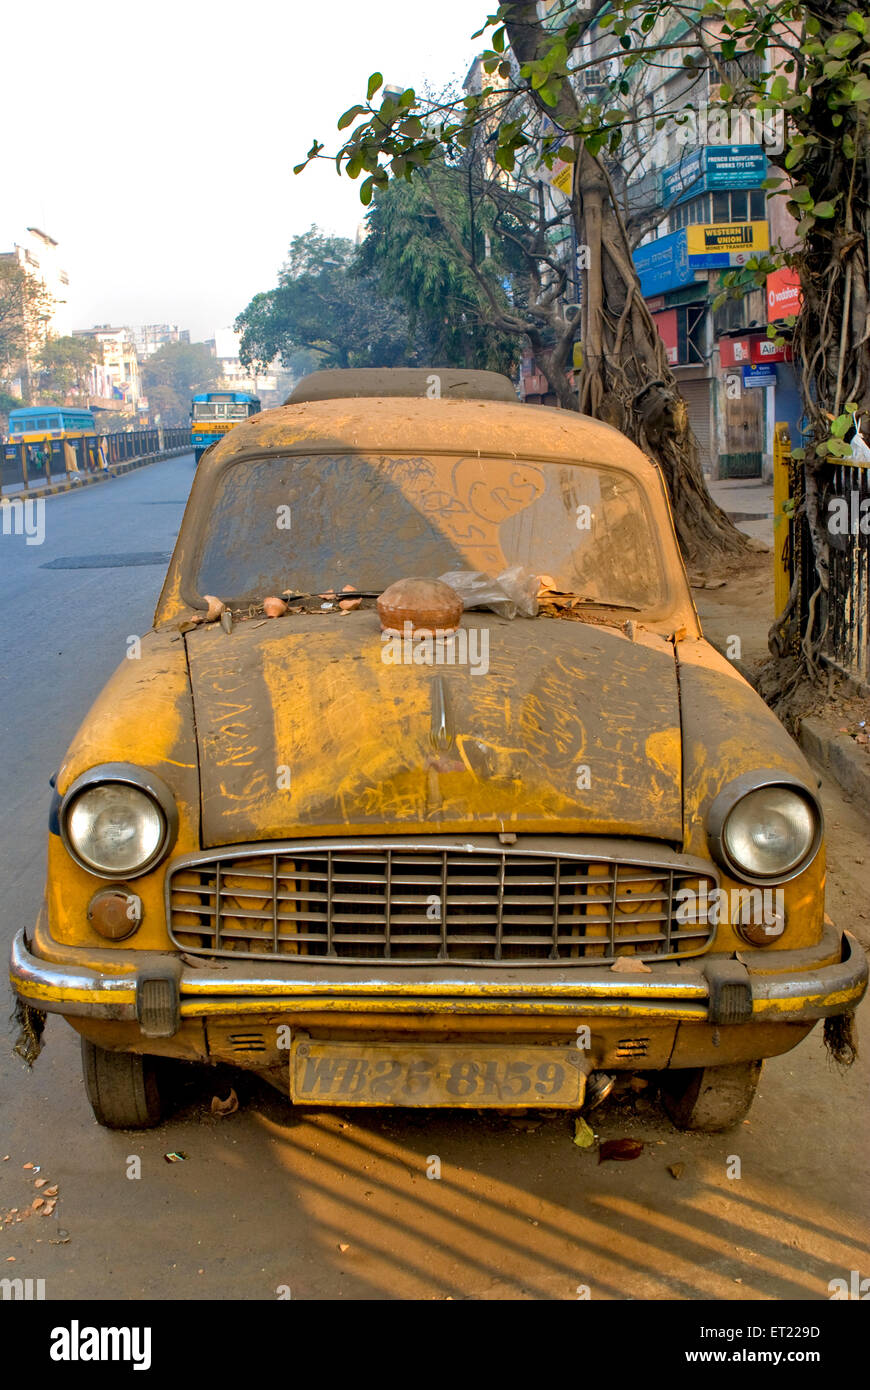 Old unused discarded covered with dust taxi Bhowanipur Calcutta Kolkata West Bengal India - Stock Image